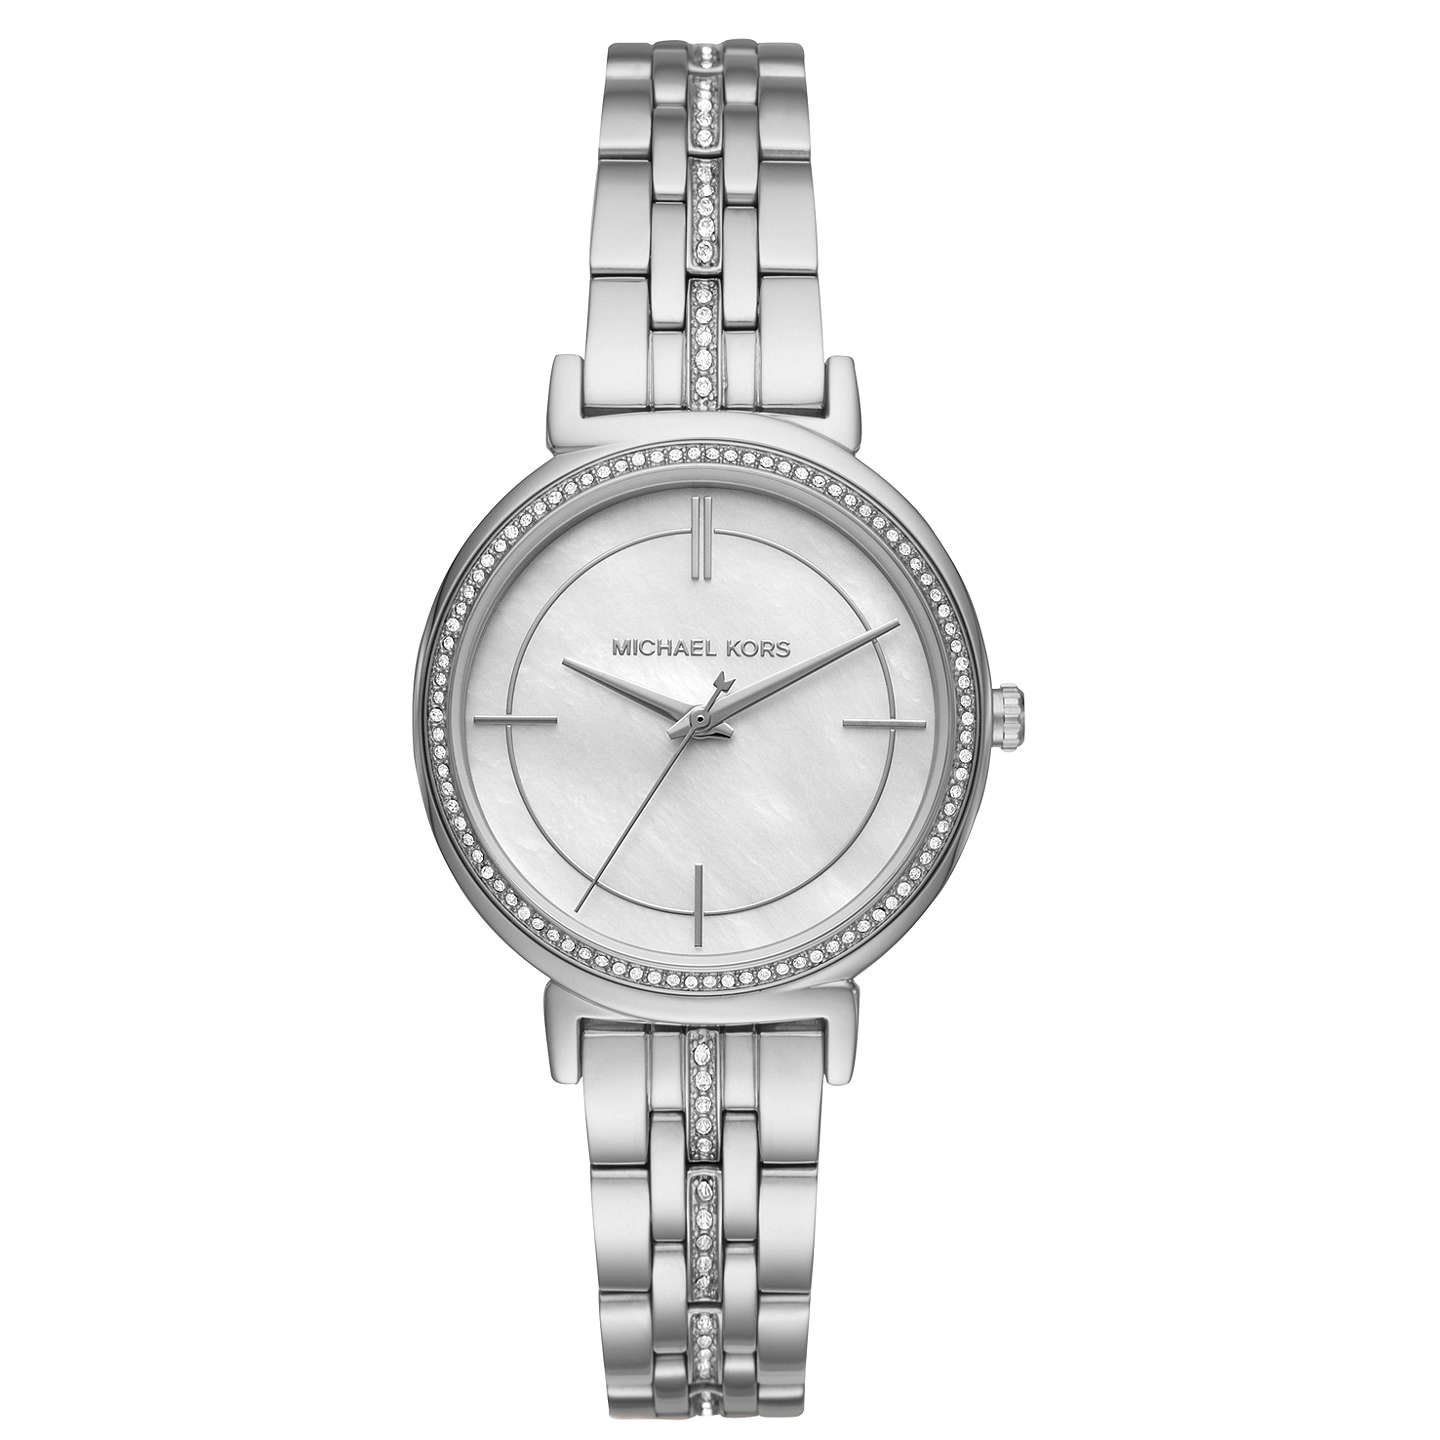 bracelet s online main rsp silver kors crystal women watch strap at johnlewis watches buymichael michael cinthia pdp com